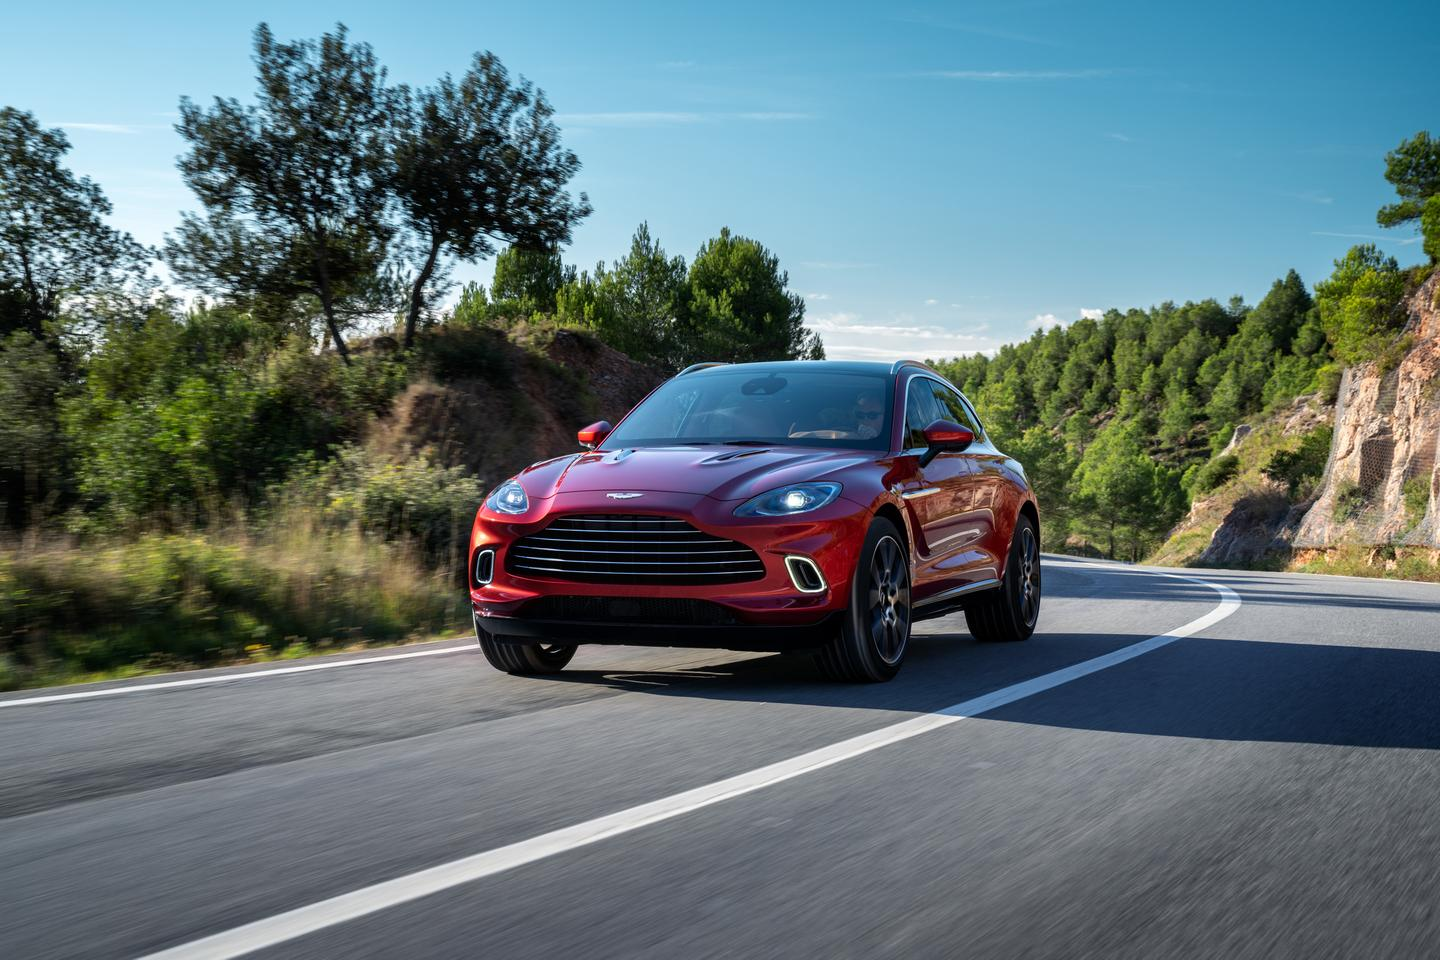 The Aston Martin DBX will be built in the company's new manufacturing facility in Wales